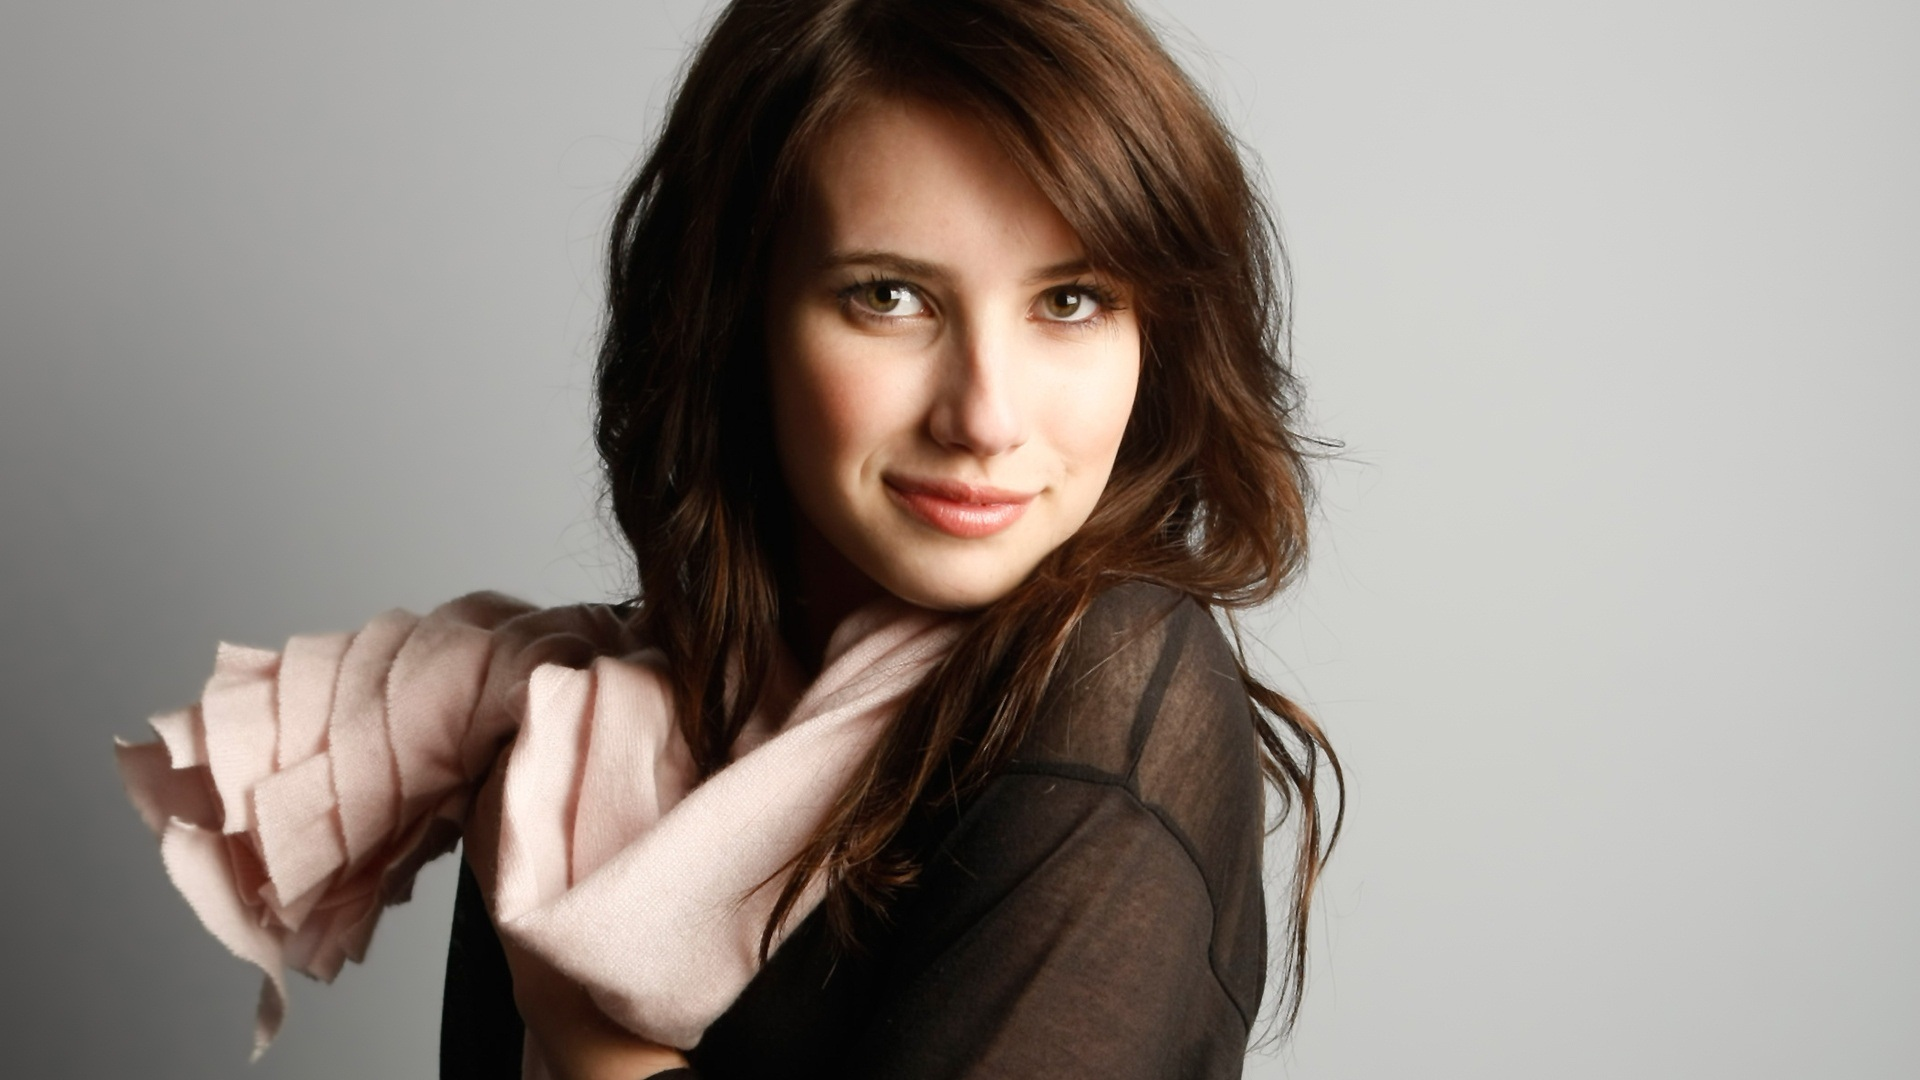 Emma Roberts Hd For Desktop Background 13 HD Wallpapers